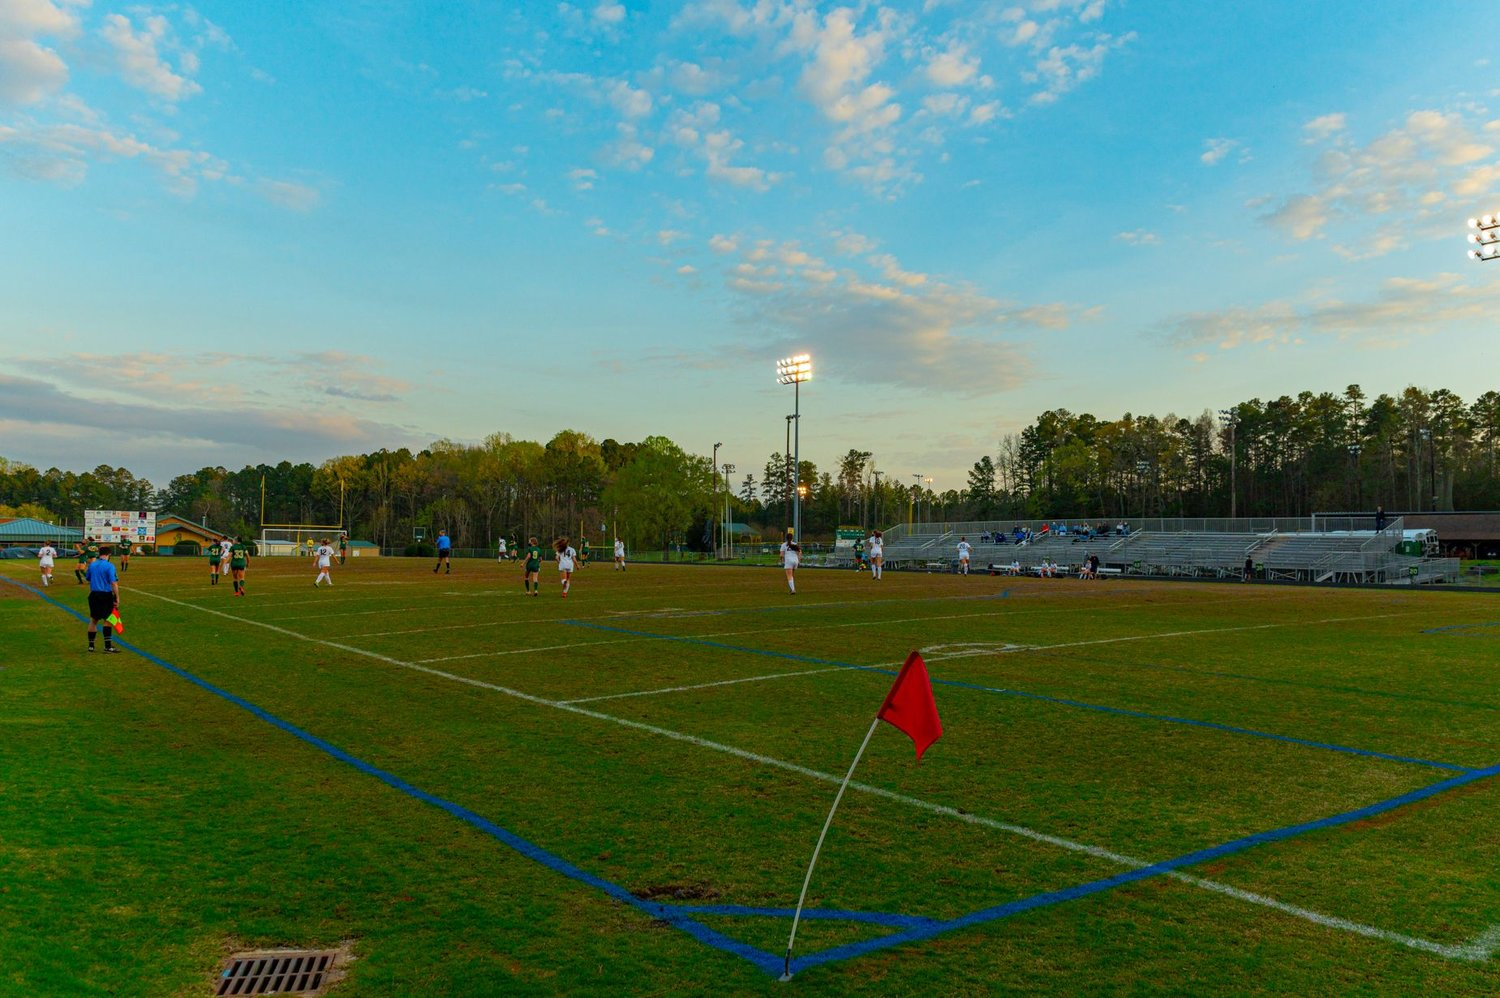 Northwood and East Chapel Hill faced off in women's soccer on March 30 in Pittsboro. East Chapel Hill won, 2-0, but had to work hard against a Northwood team that kept things close for much of the night.